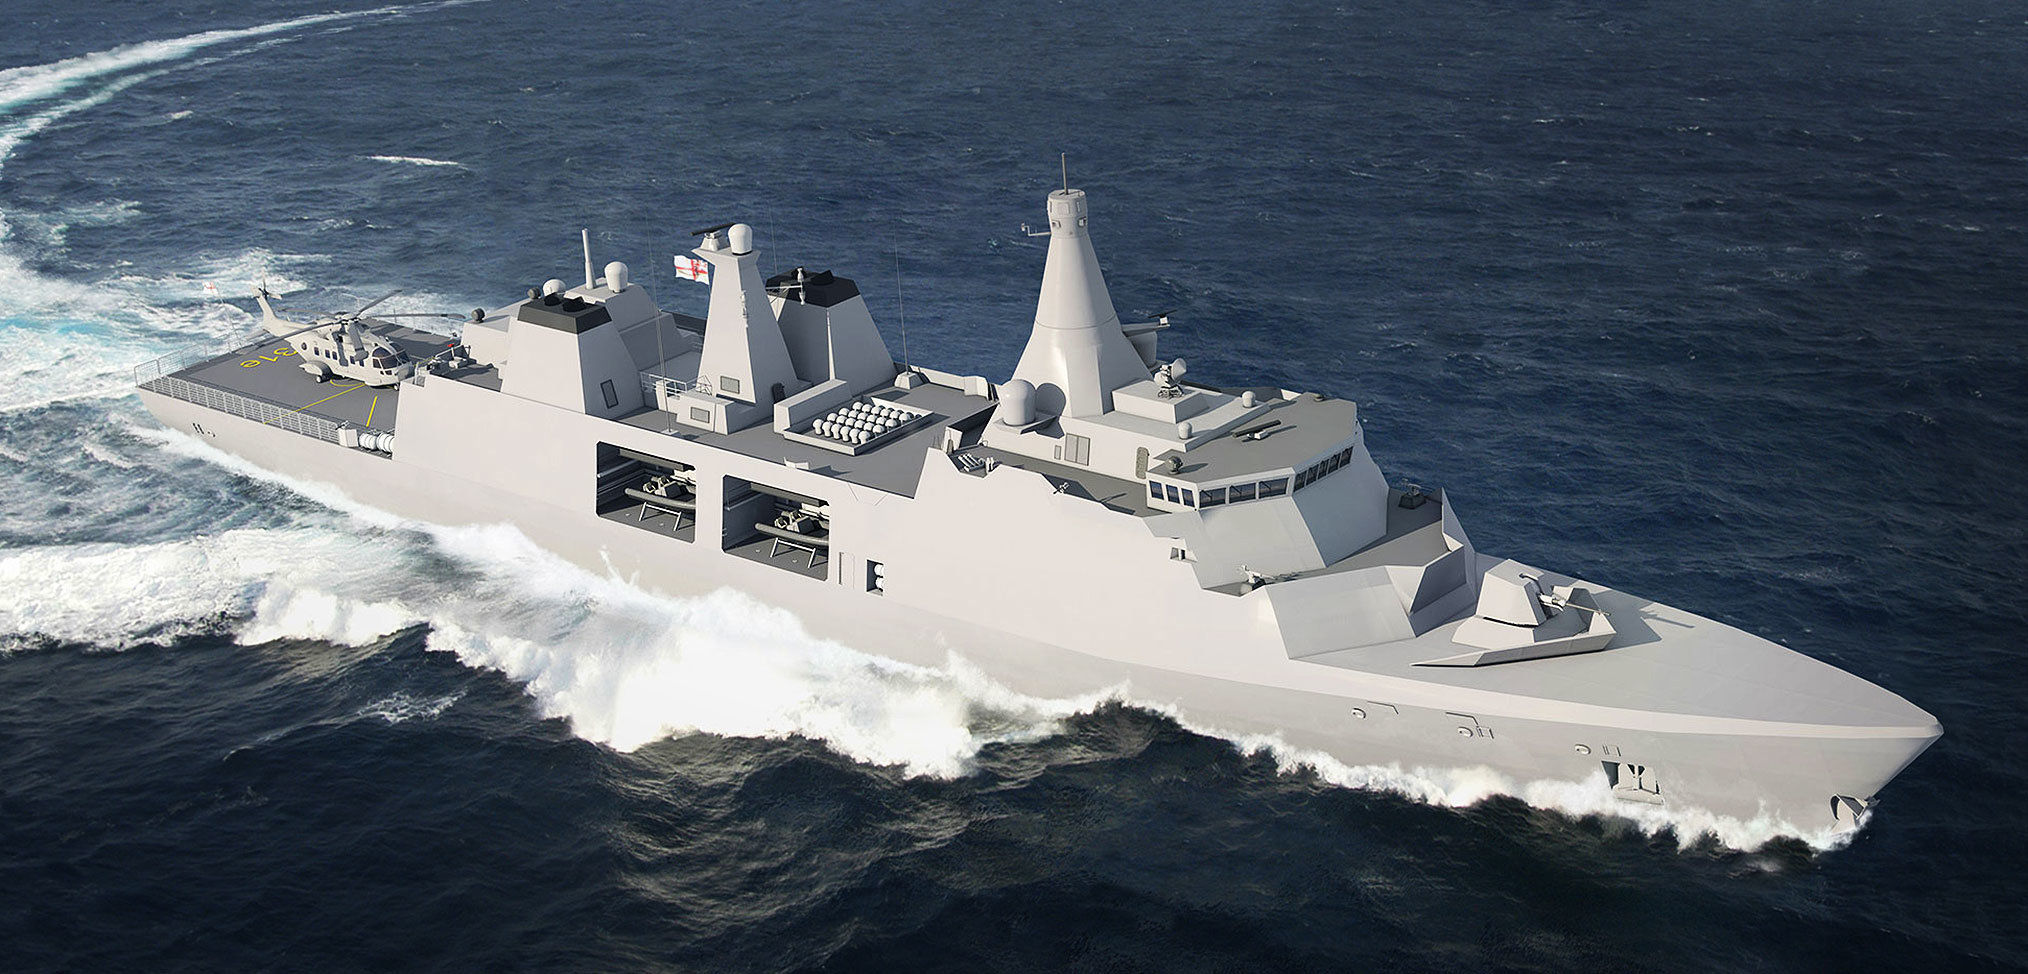 In focus – the Arrowhead 140 Type 31e frigate candidate